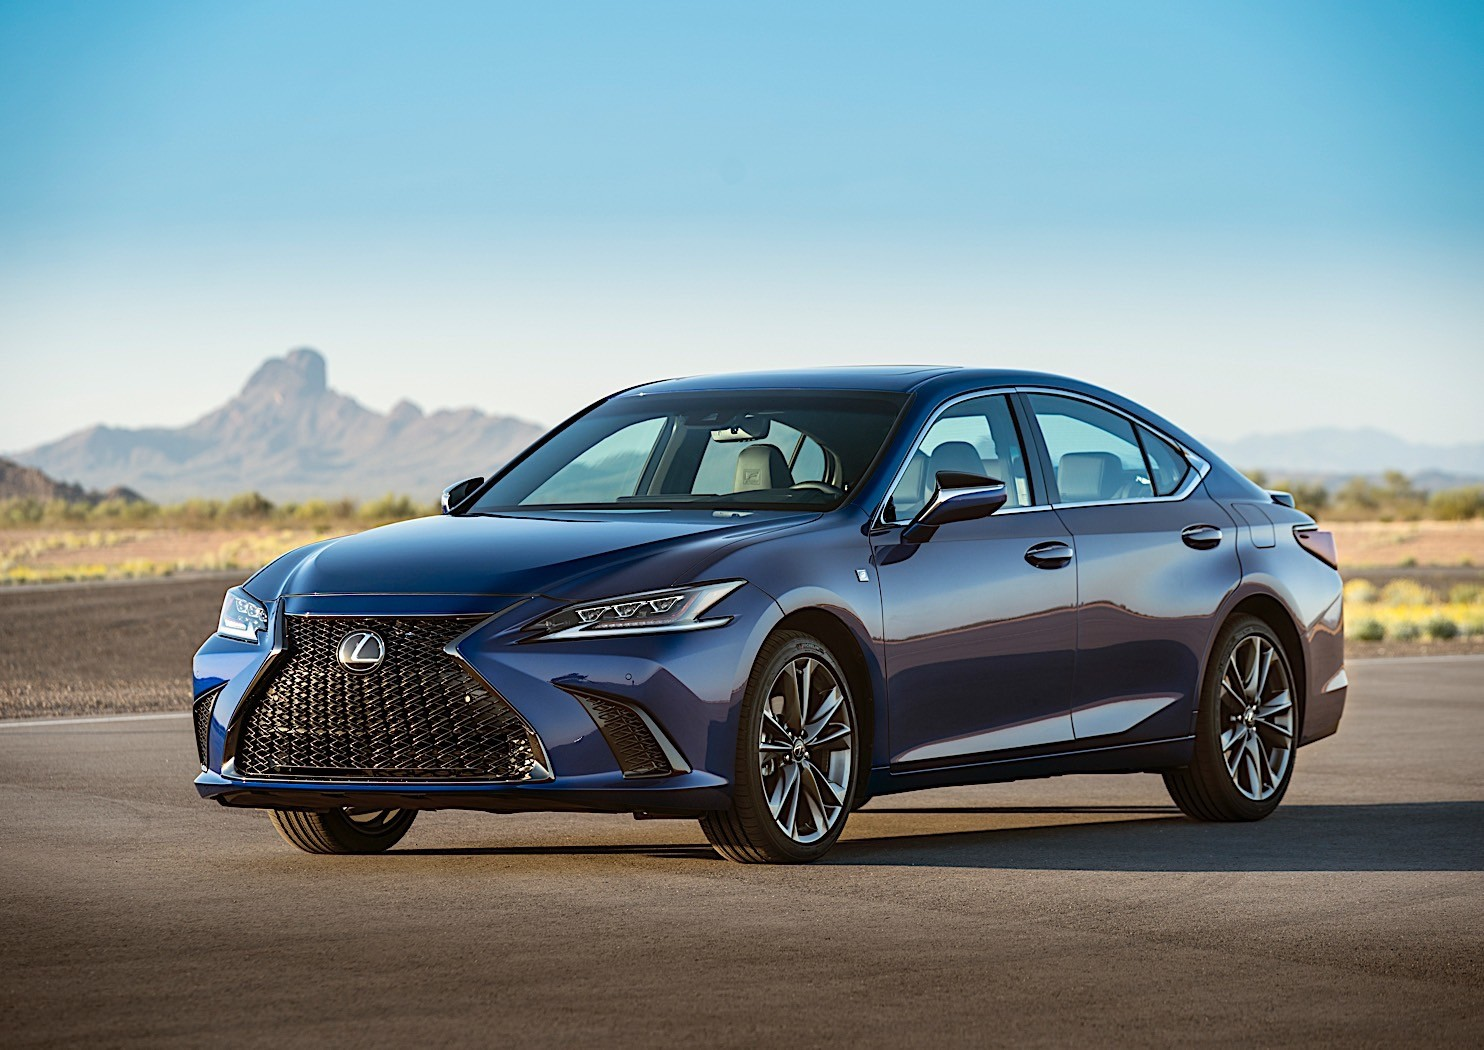 connoisseurs of sedan to in upset for segment lexus balance models major third among power their continue pull sedans motor is sport the season generation sophomore alike